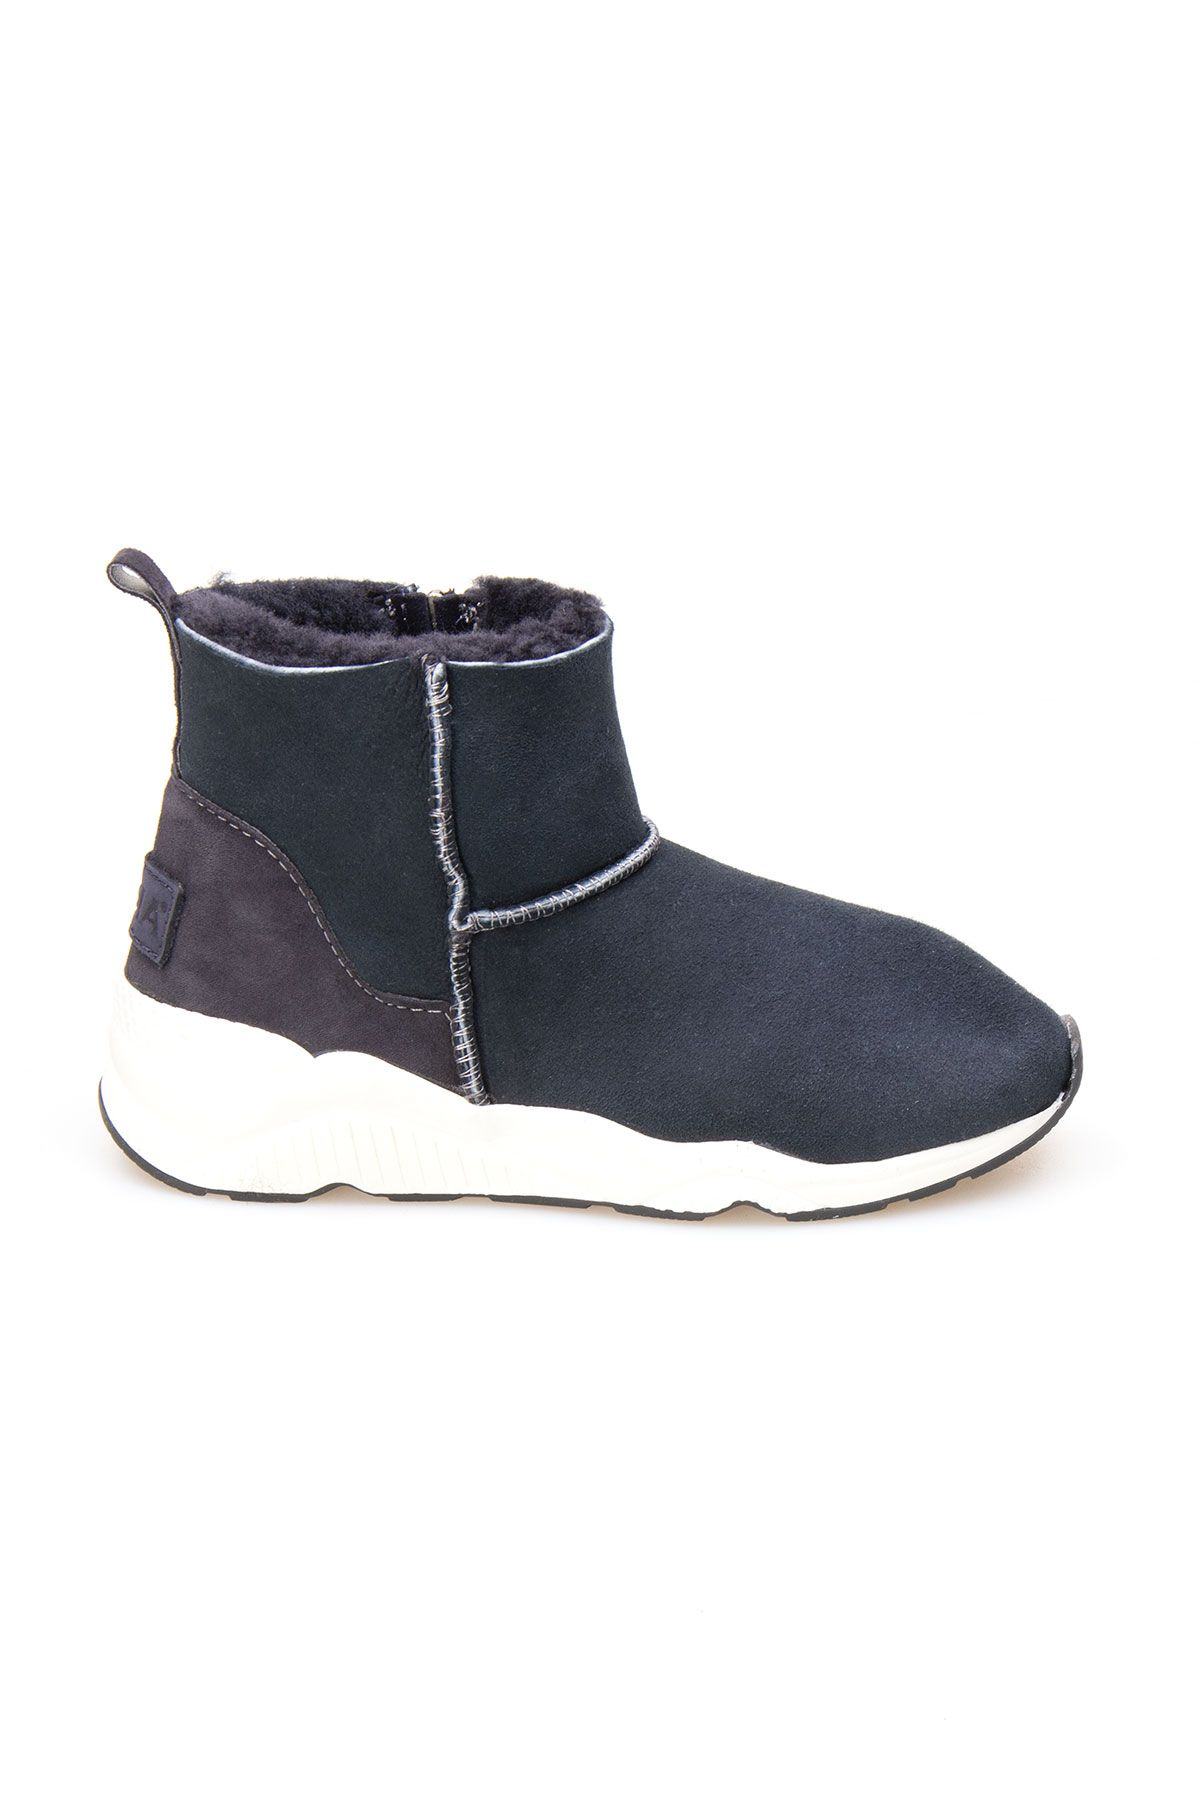 Pegia Genuine Shearling Zippered Women's Ankle Boots 191067 Anthracite-colored